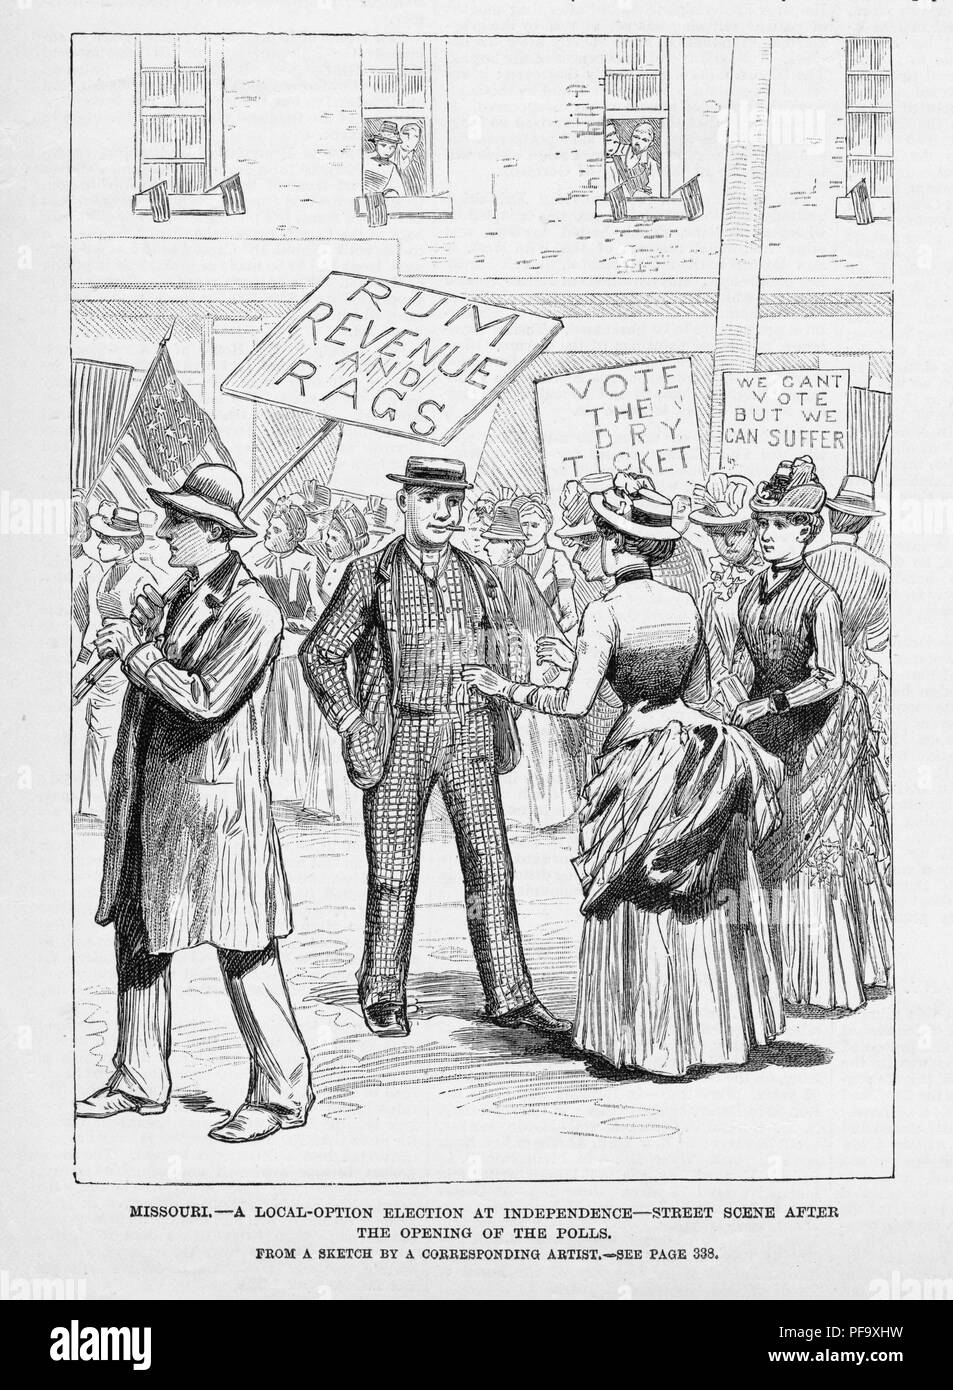 Black and white illustration depicting pre-suffrage Missouri women, on the street, promoting Prohibition during a local election, captioned 'Missouri - a local-option election at independence - street scene after the opening of the polls, ' published for the American market, 1888. () - Stock Image